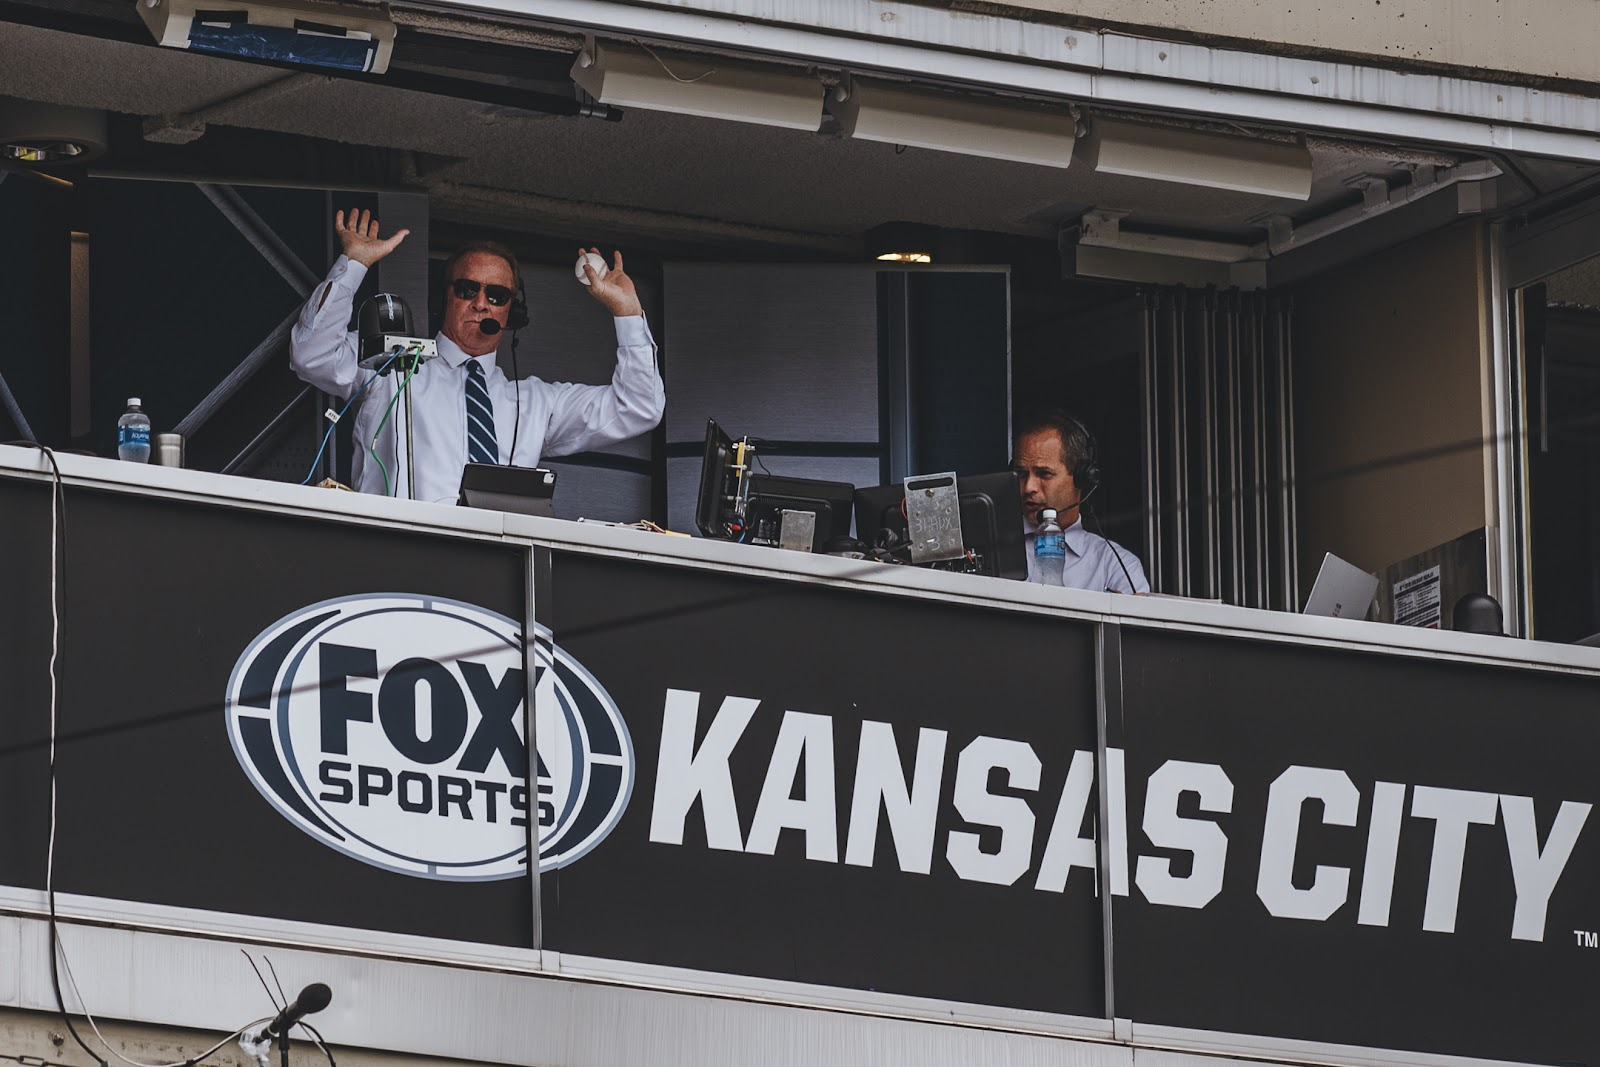 Rex Hudler poses for the camera in the press box.